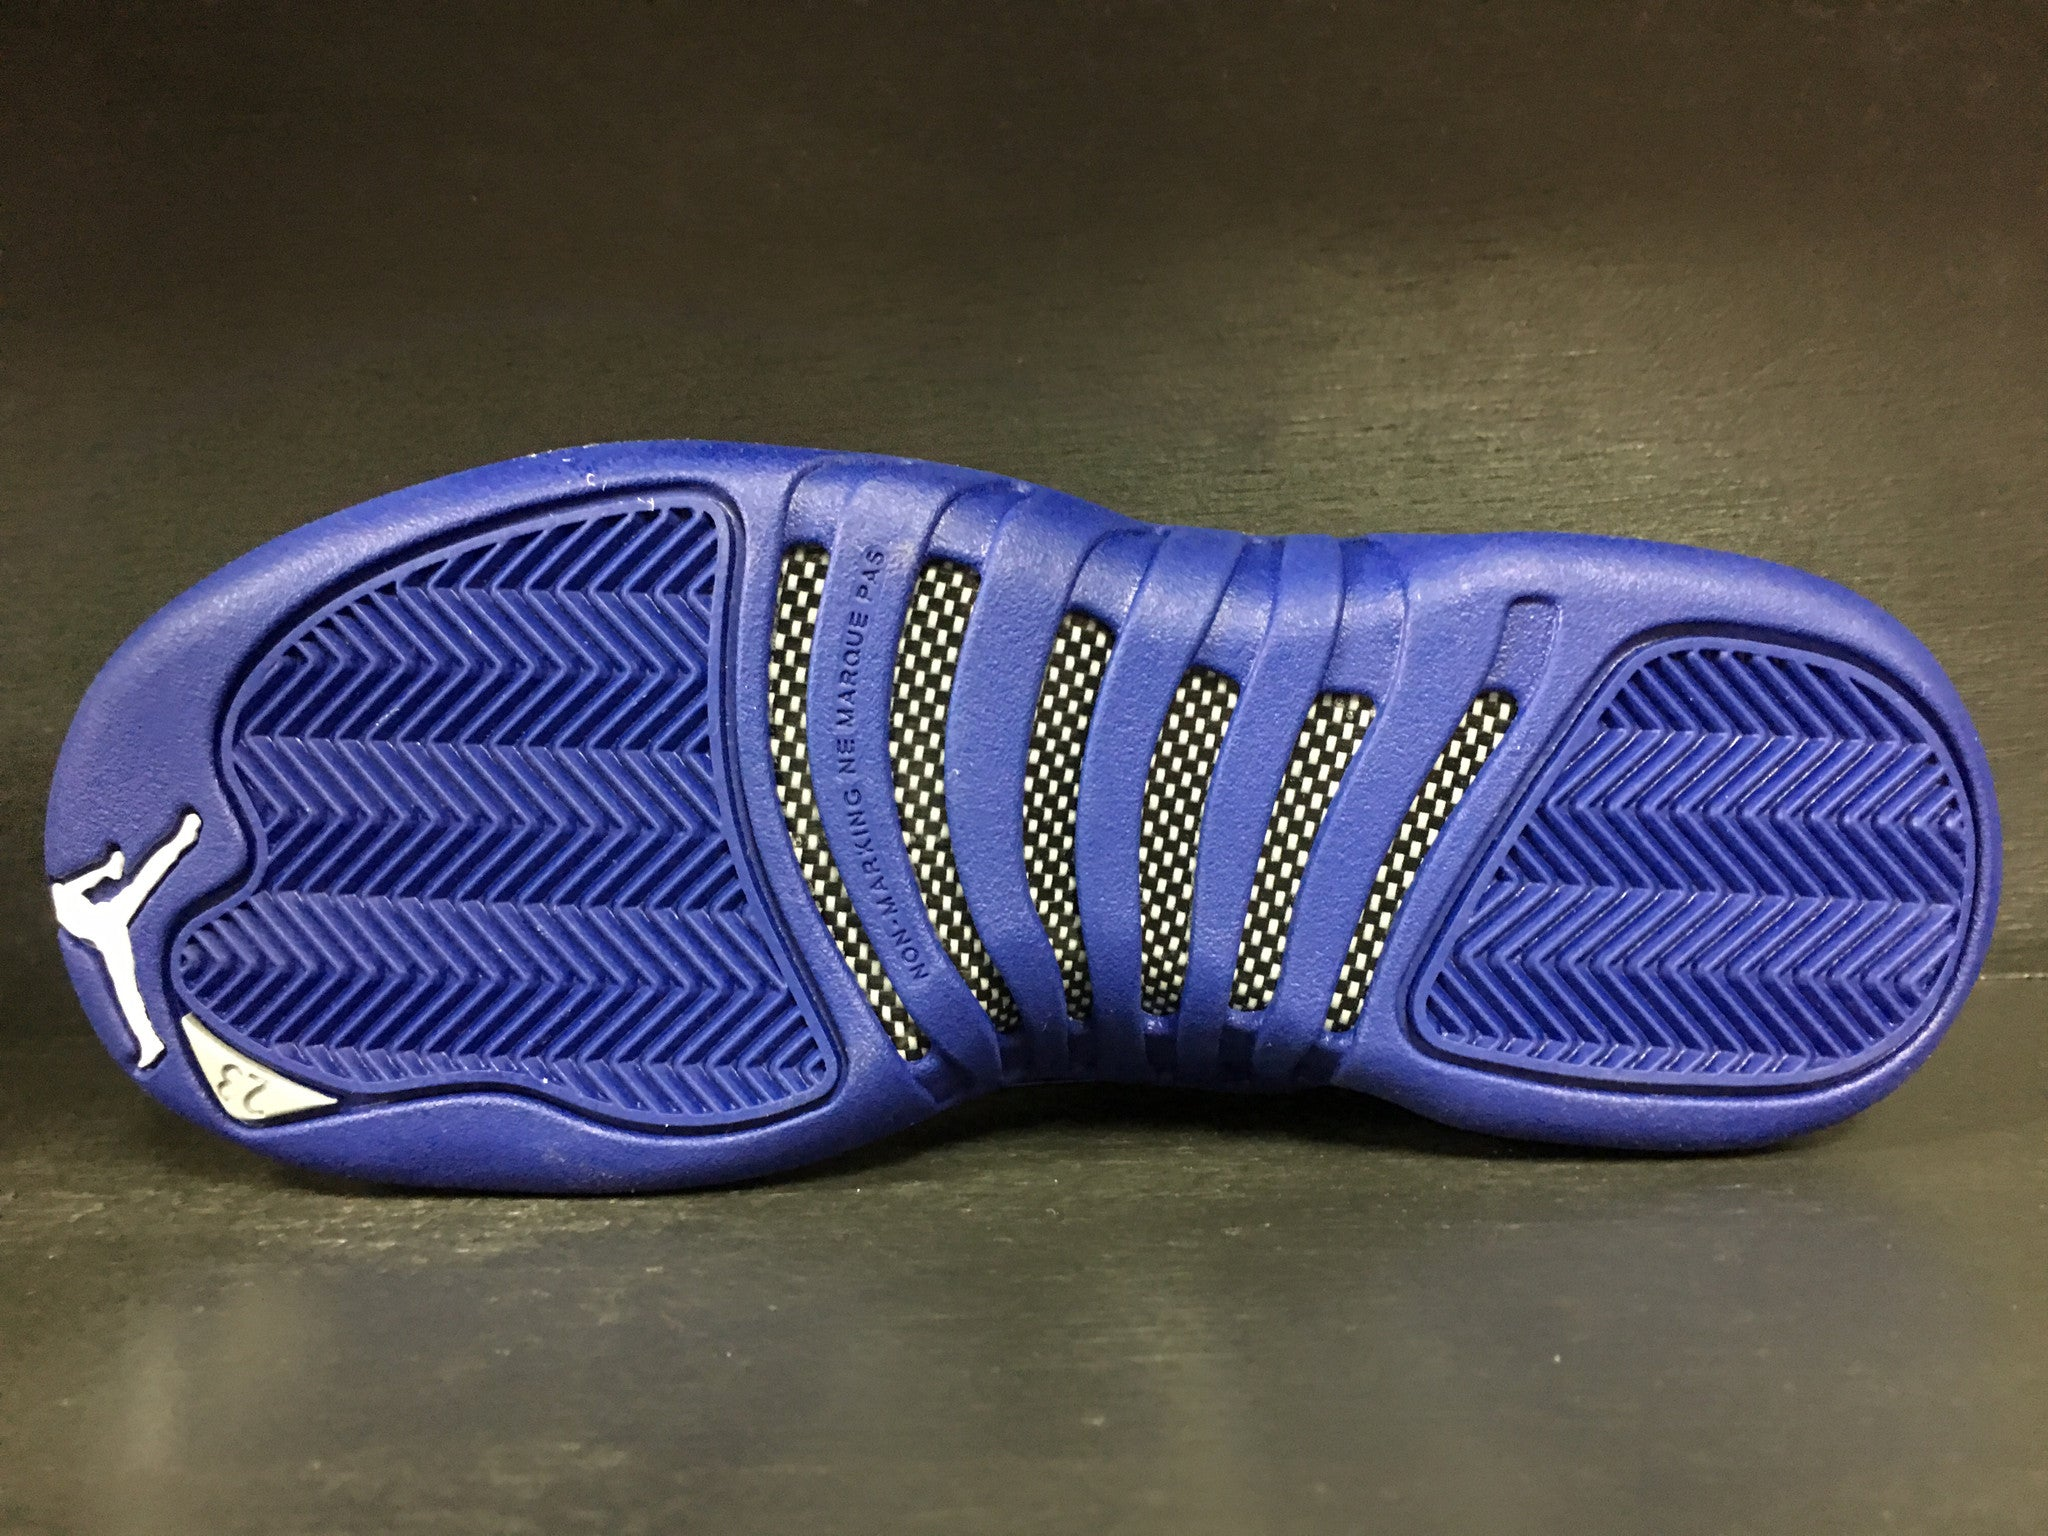 Air Jordan 12 Retro 'Deep Royal' Grade School